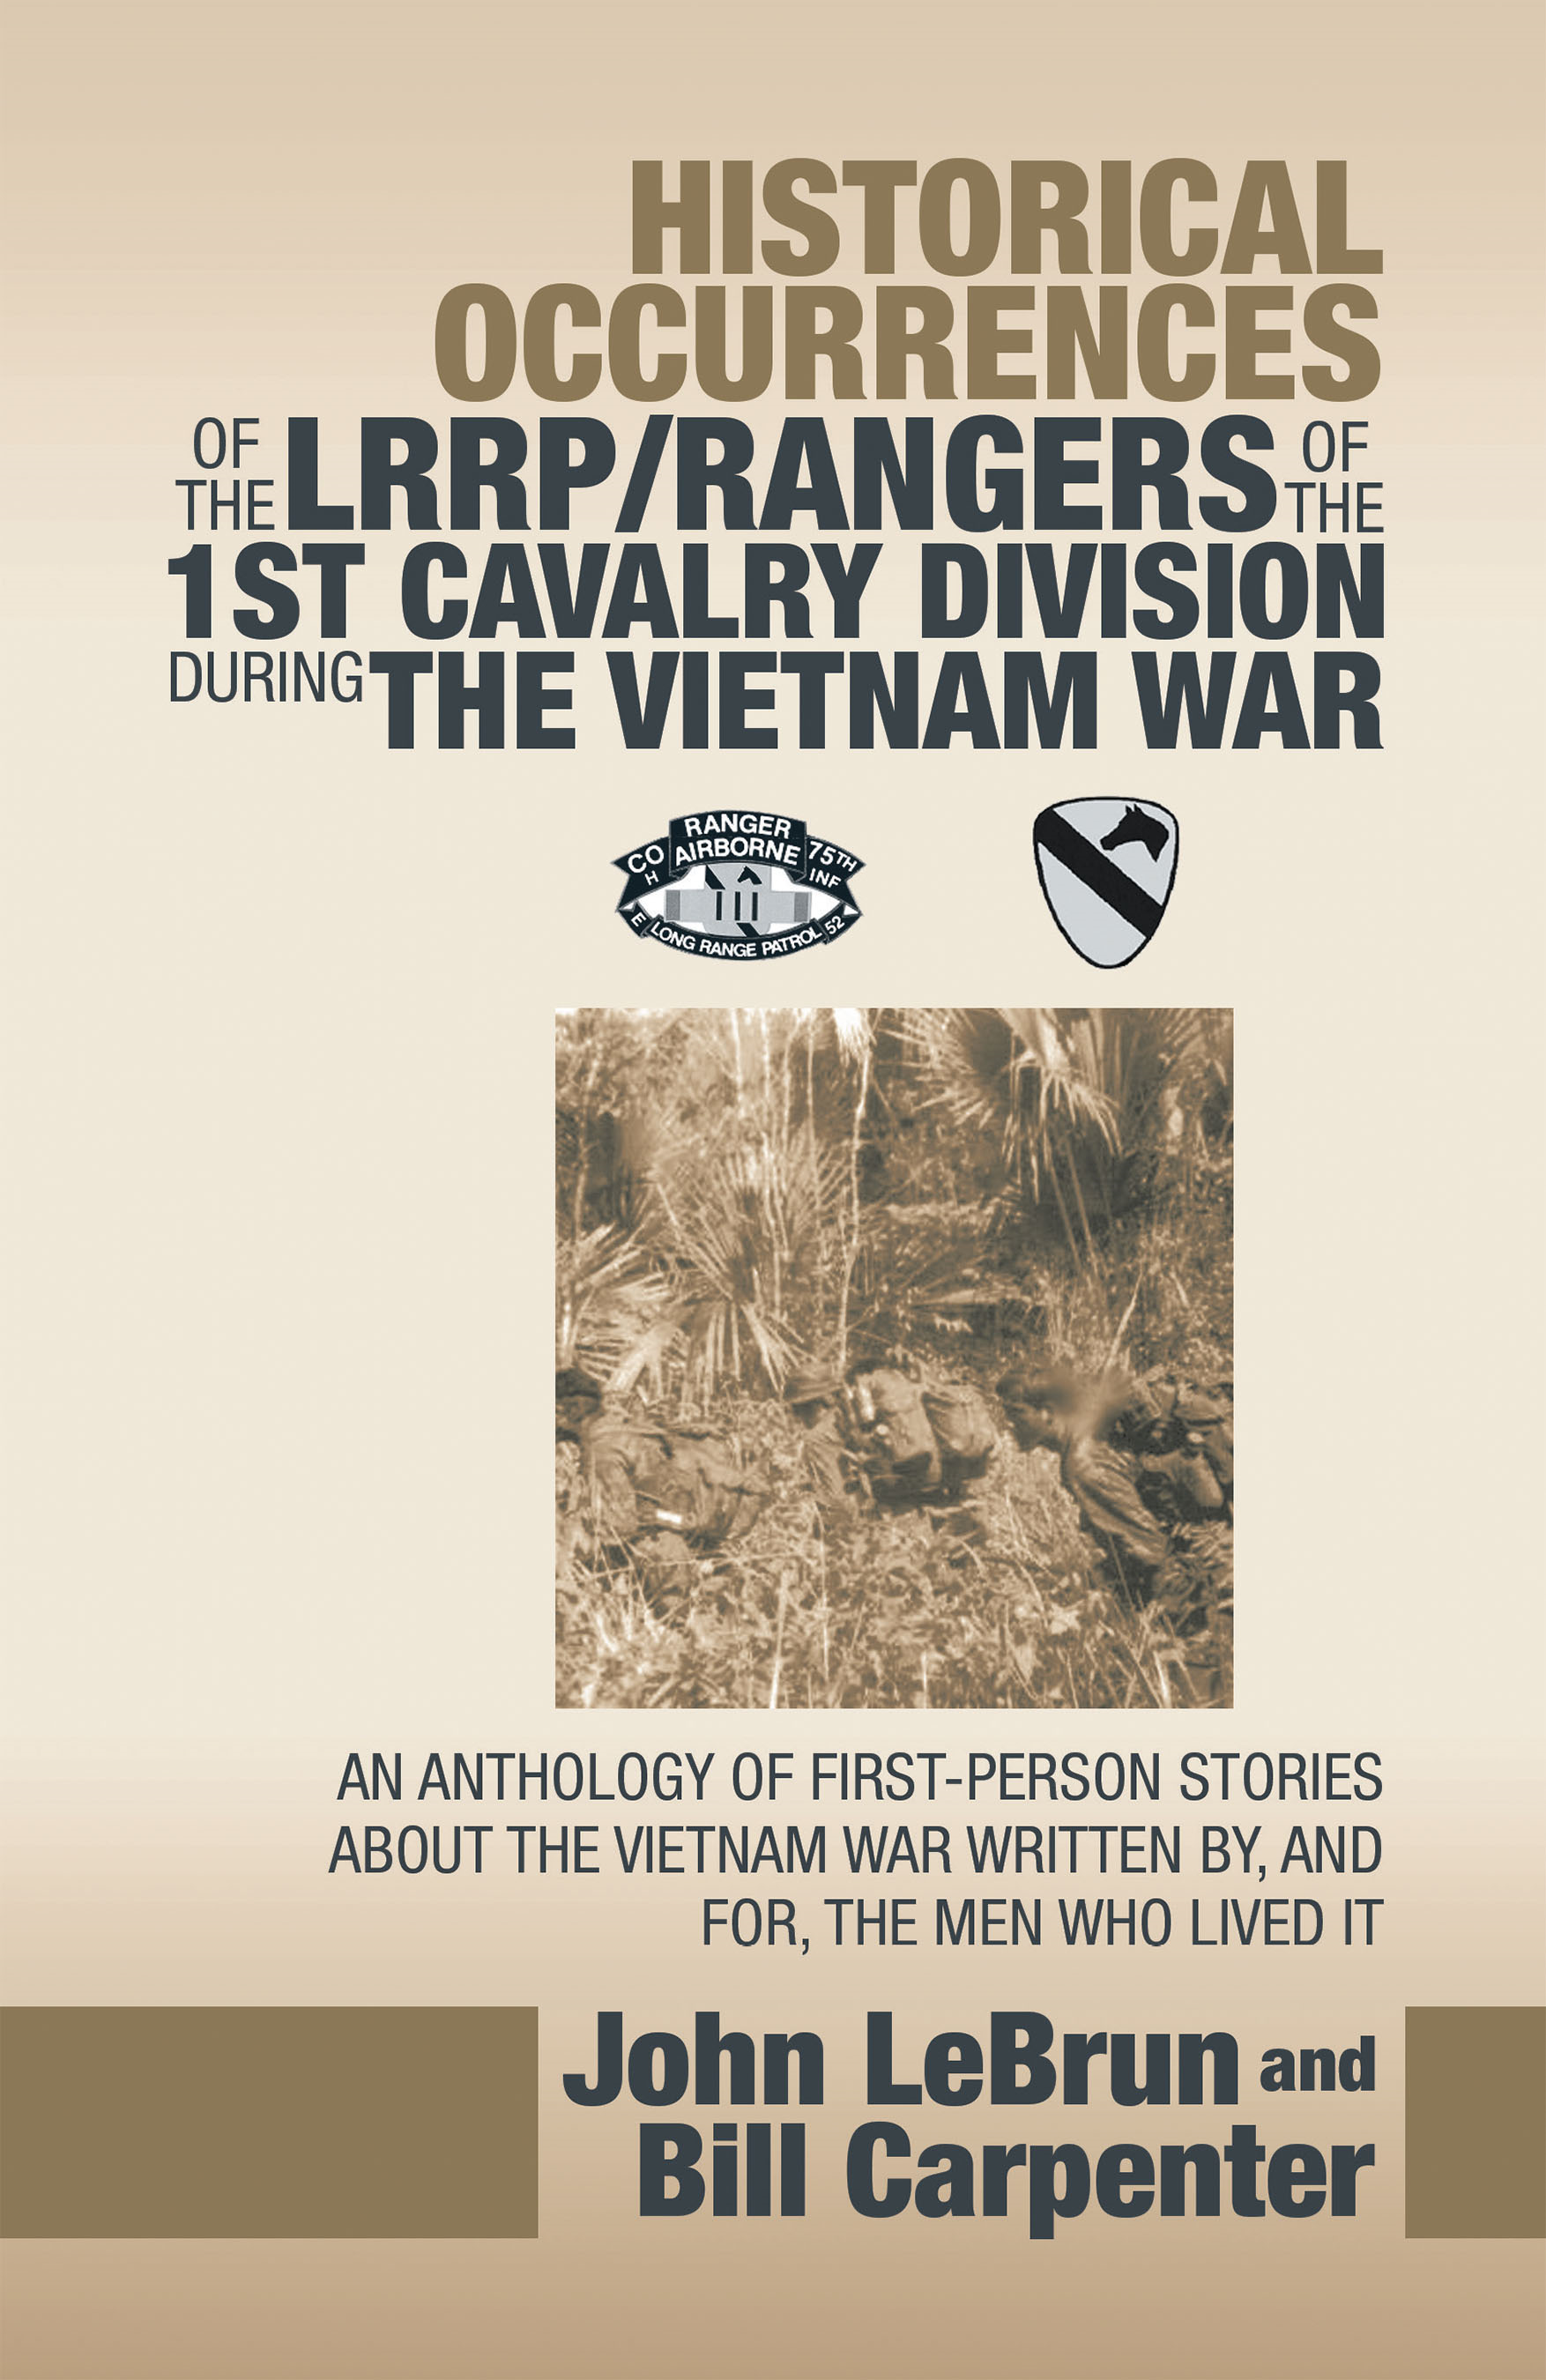 Historical Occurrences of the Lrrp/Rangers  of the 1St Cavalry Division During the Vietnam War